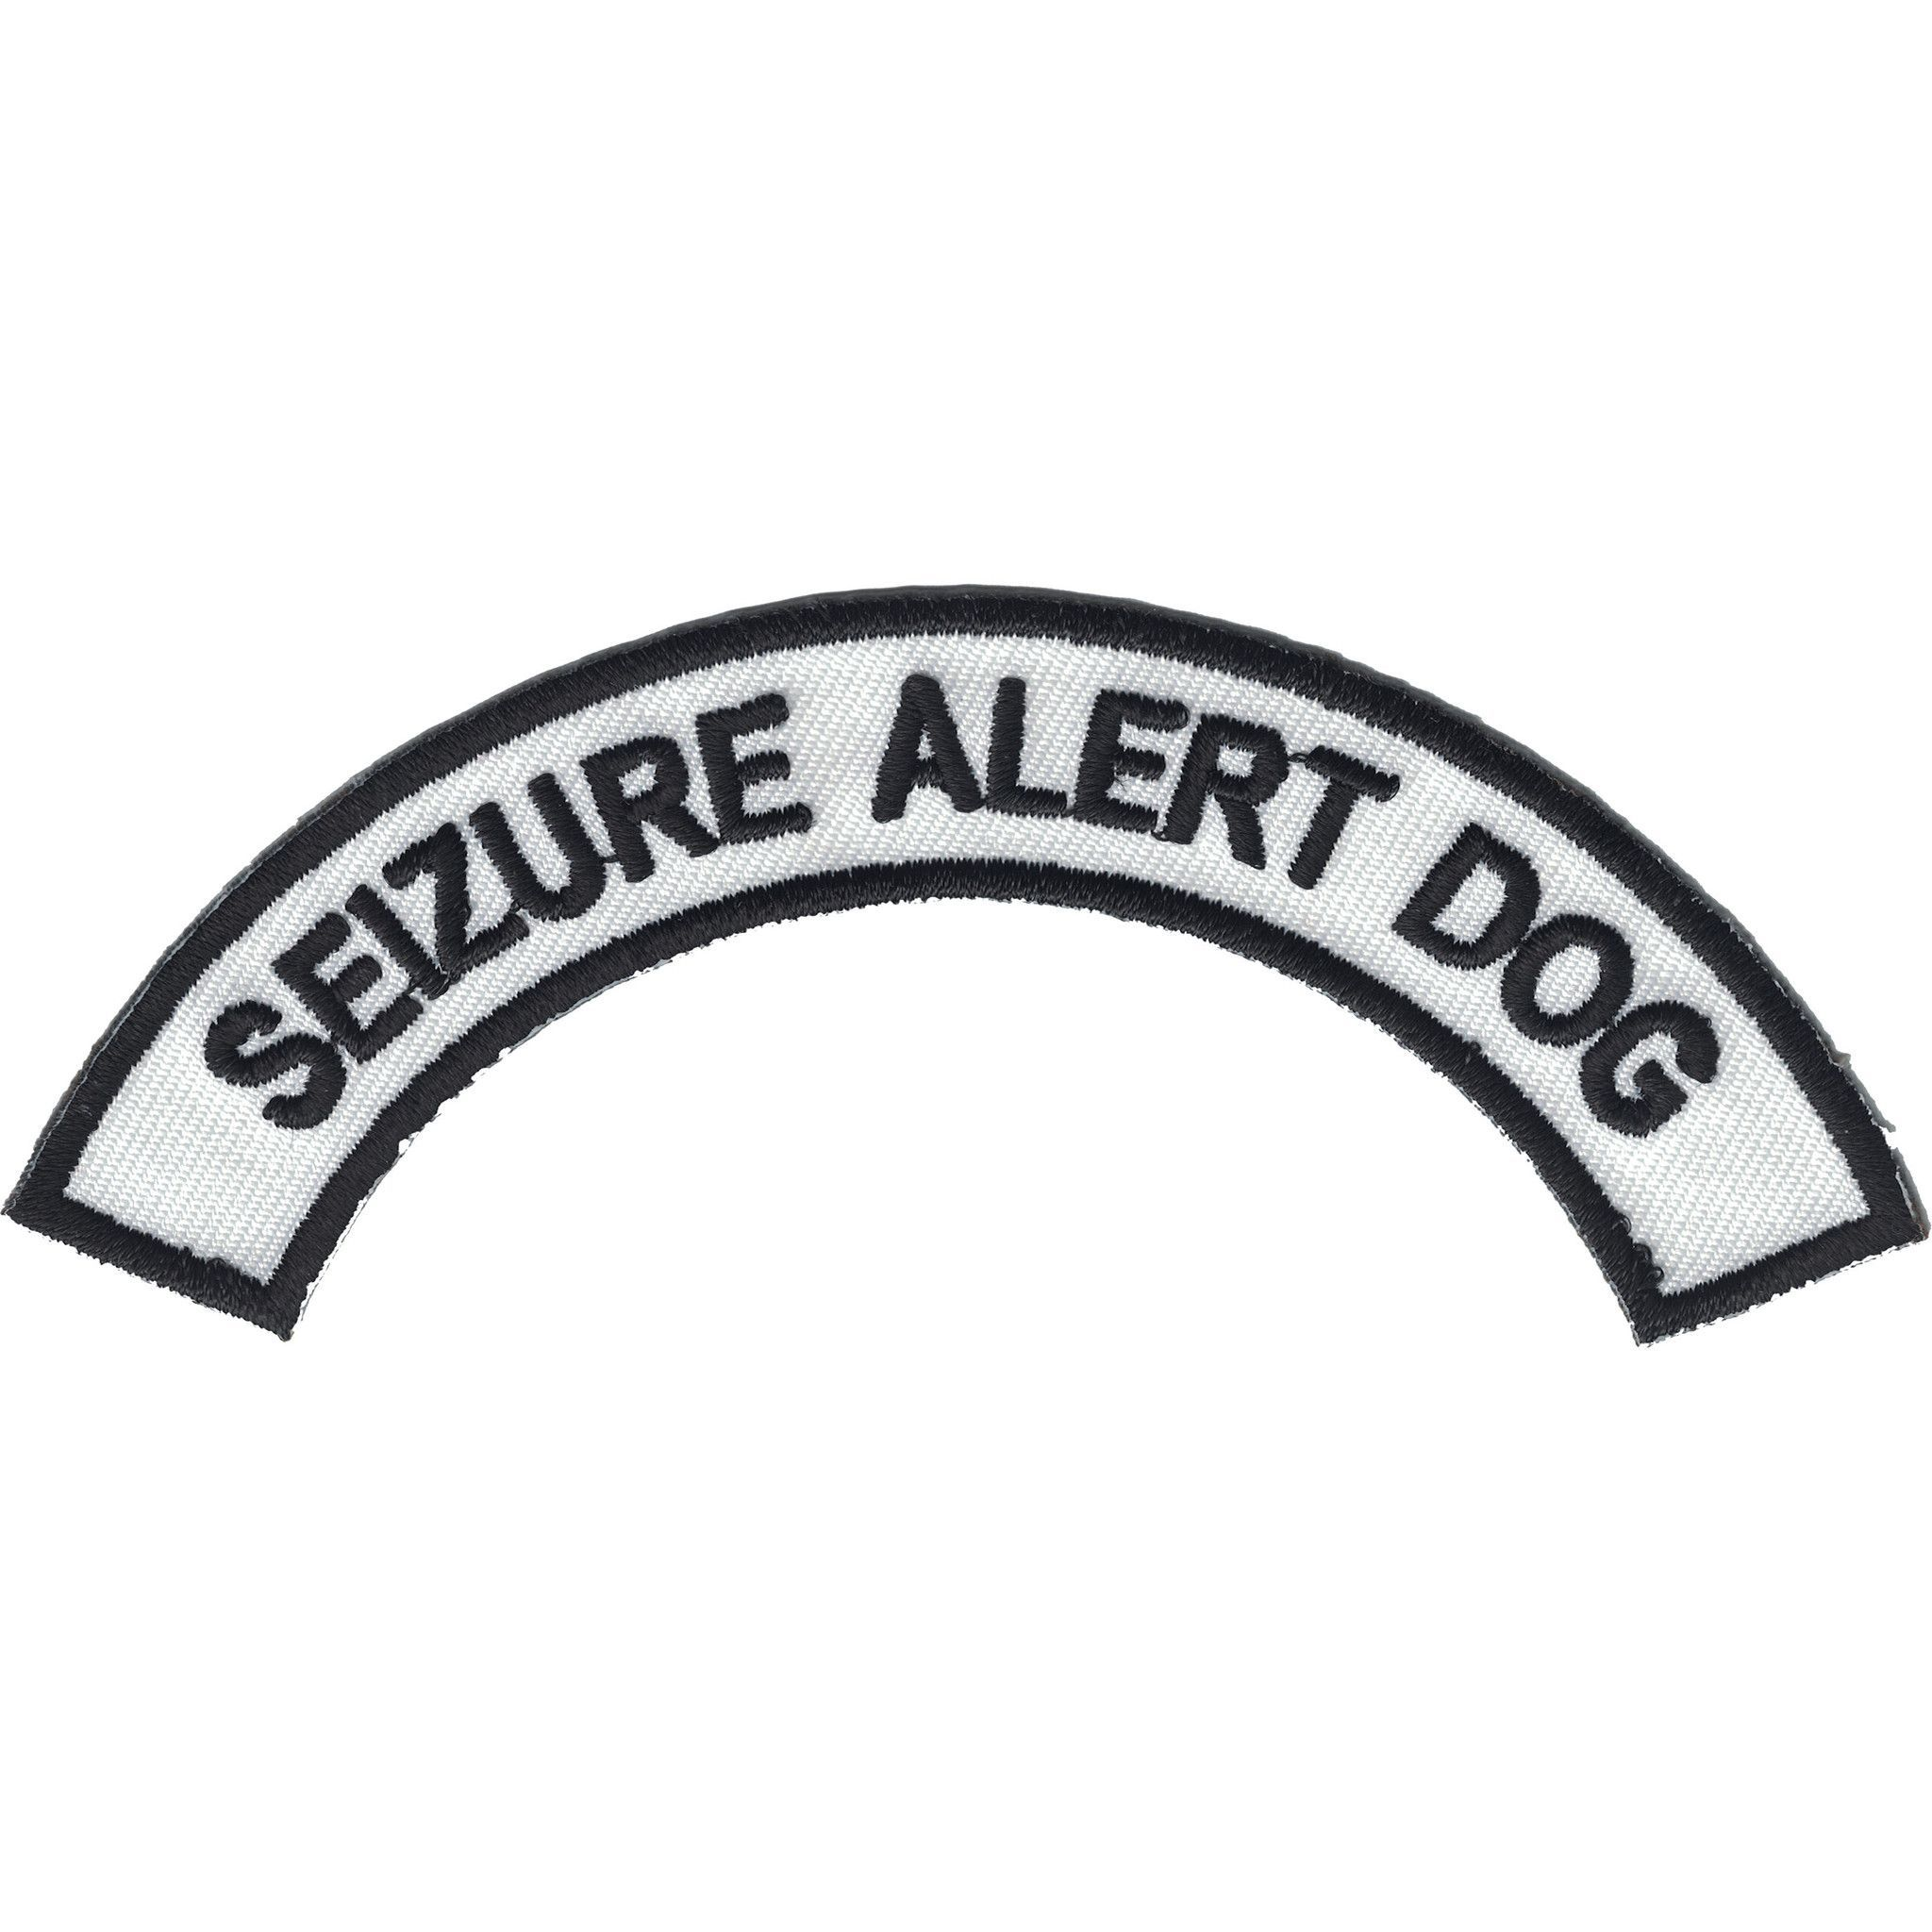 Patch Seizure Alert Dog Service Dogs Dog Training Seizures